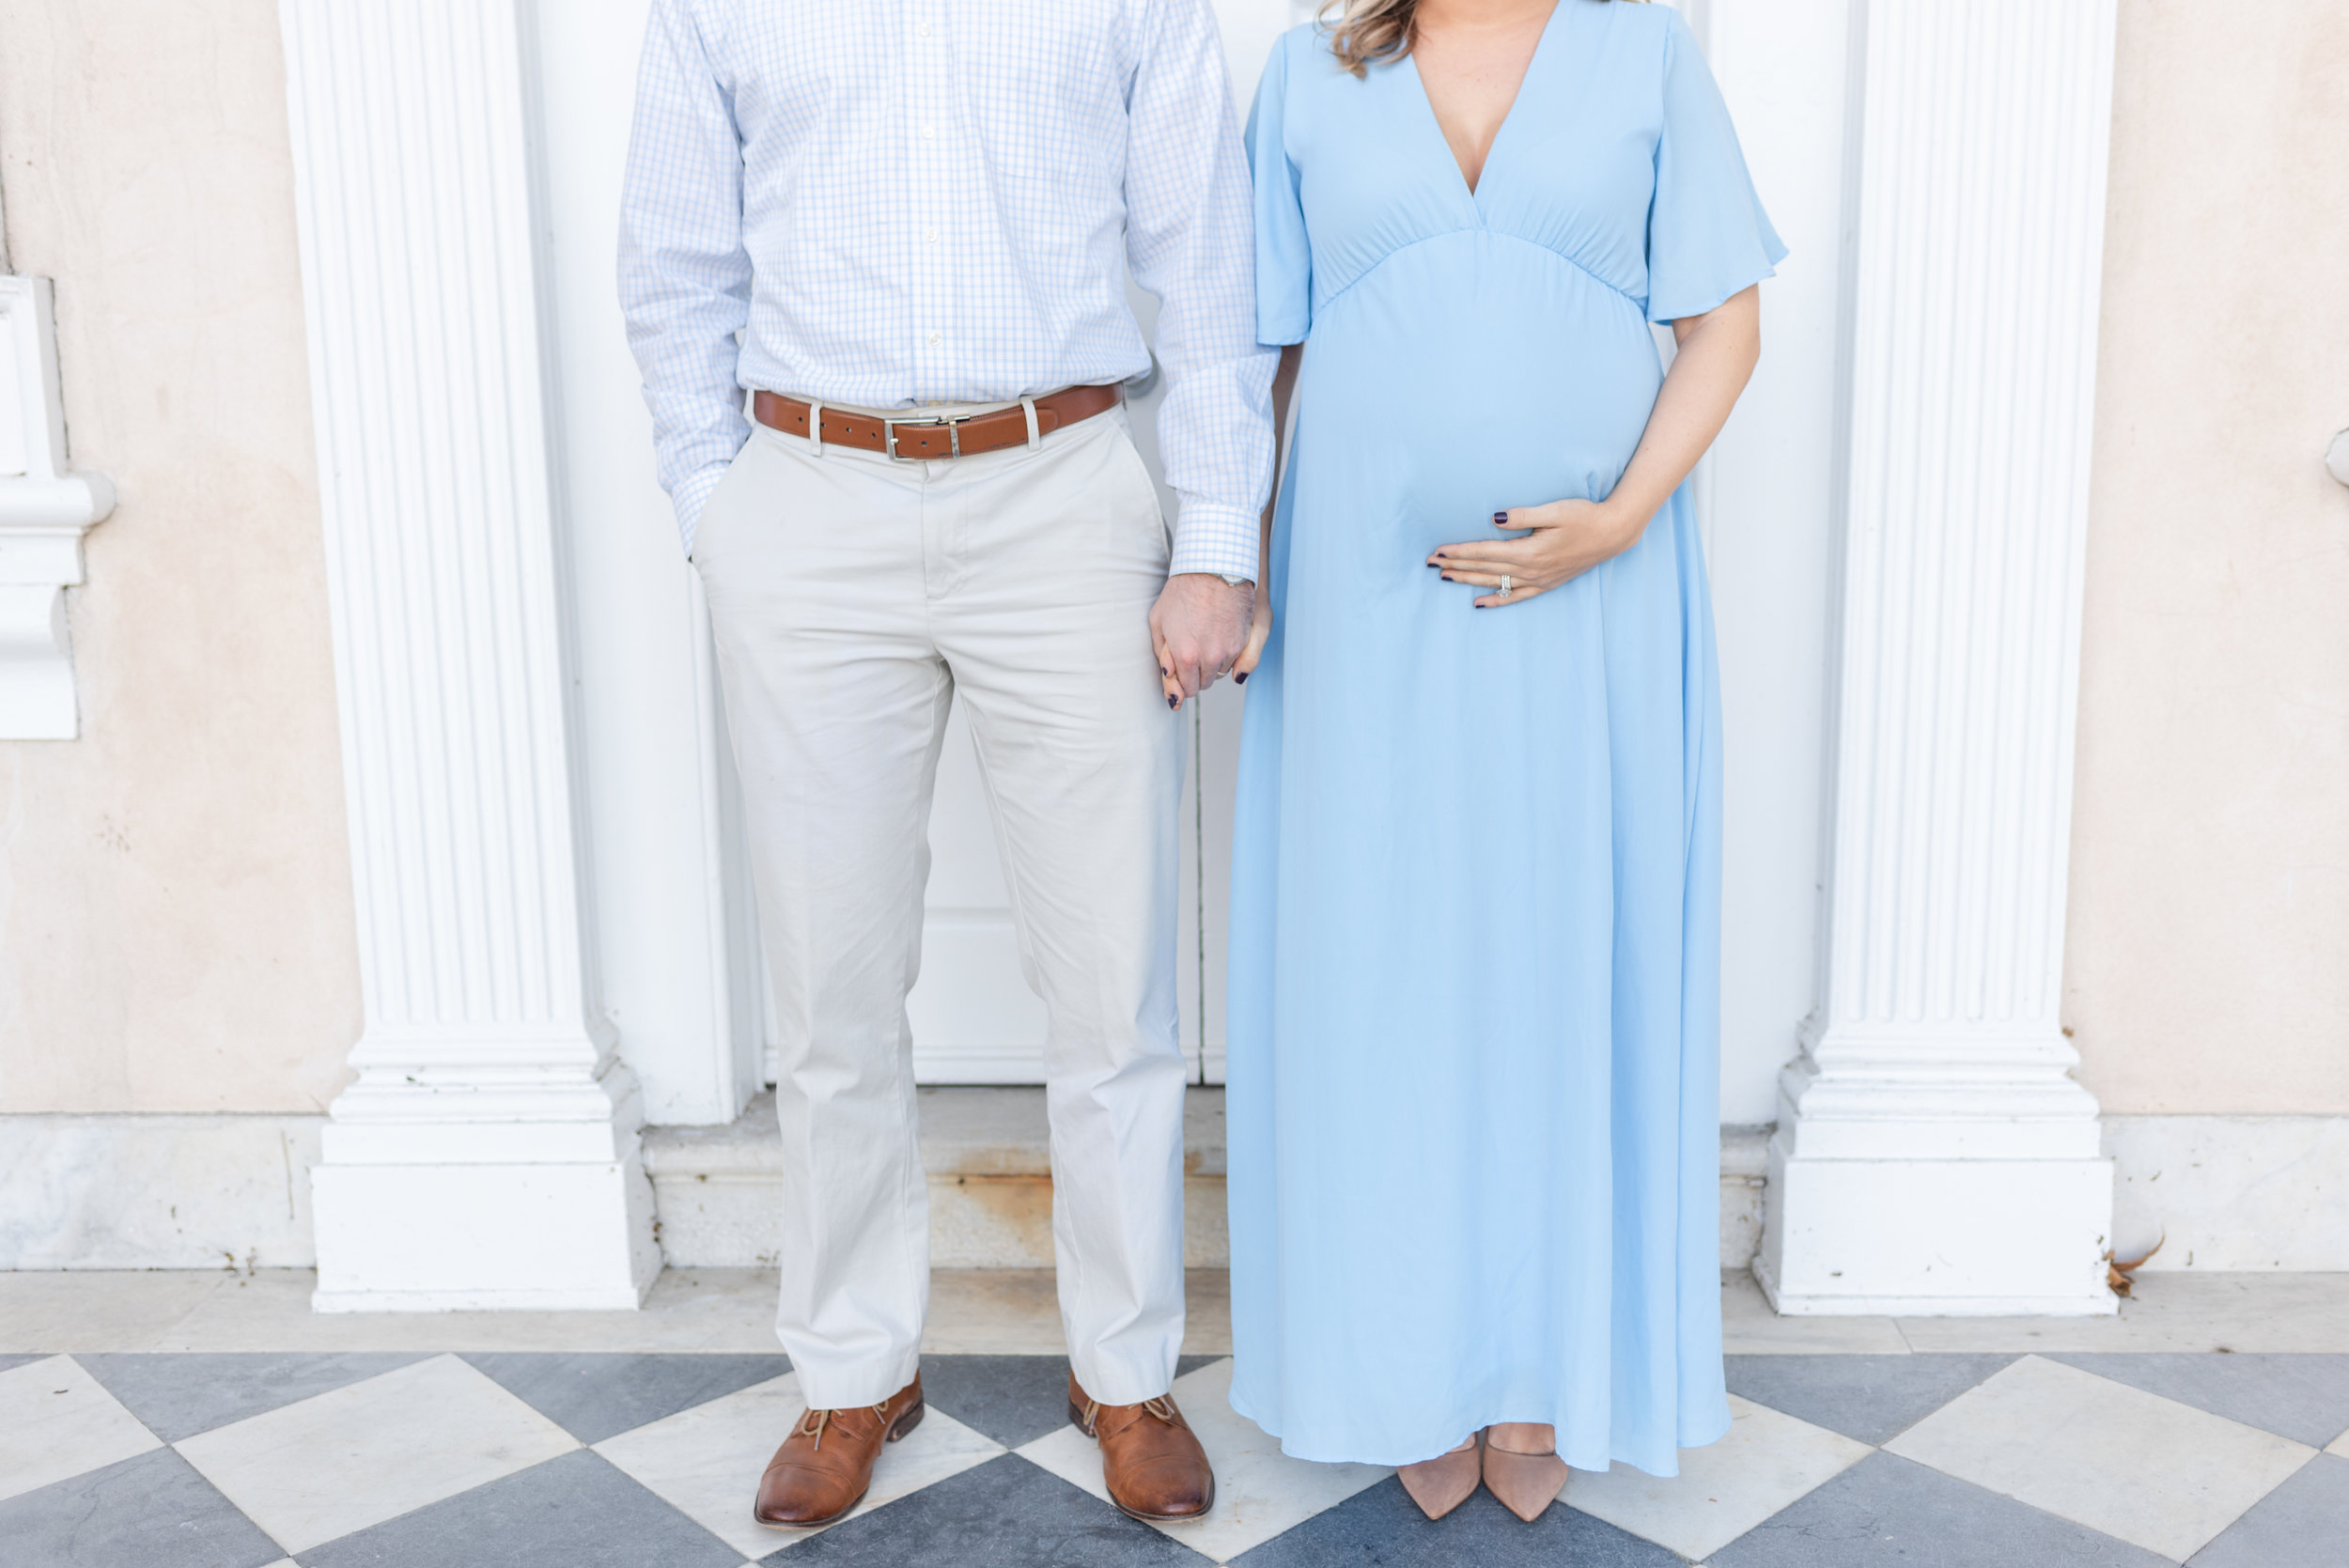 Willertz Maternity_Hampton_Mansion_Towson_Maryland Photography (29 of 66).jpg